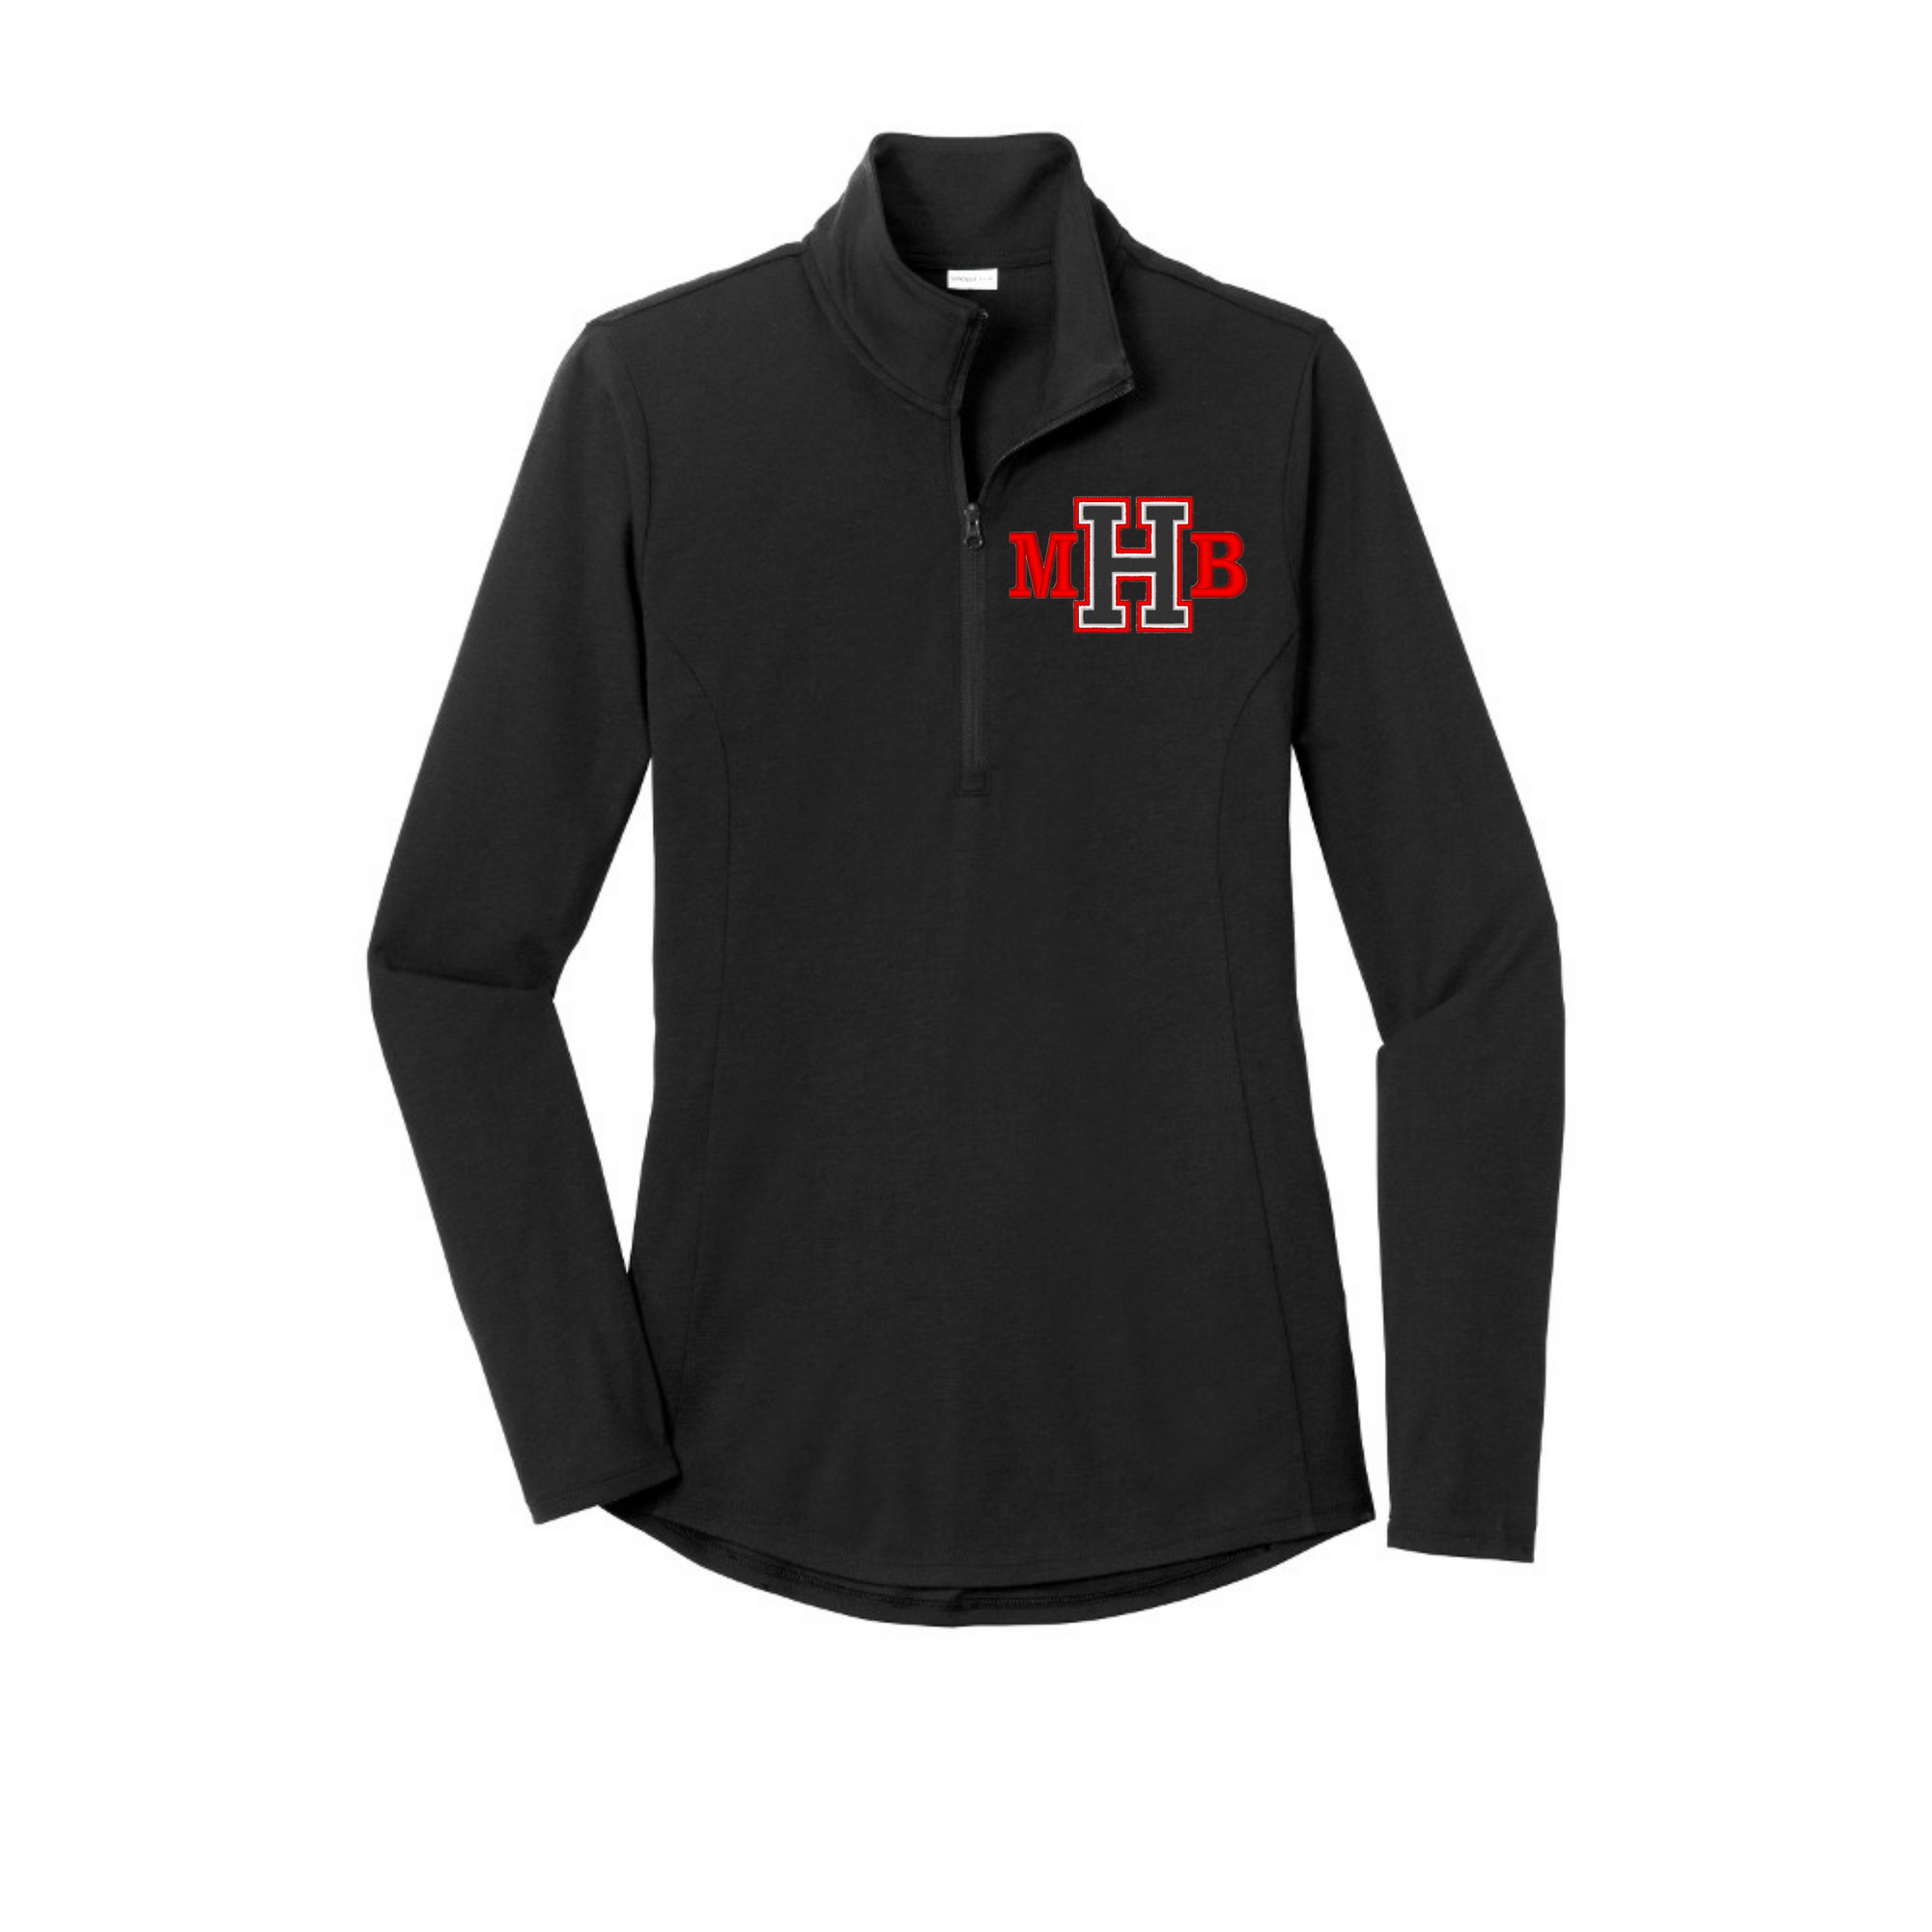 Ladies 1/4 Zip light weight pull over